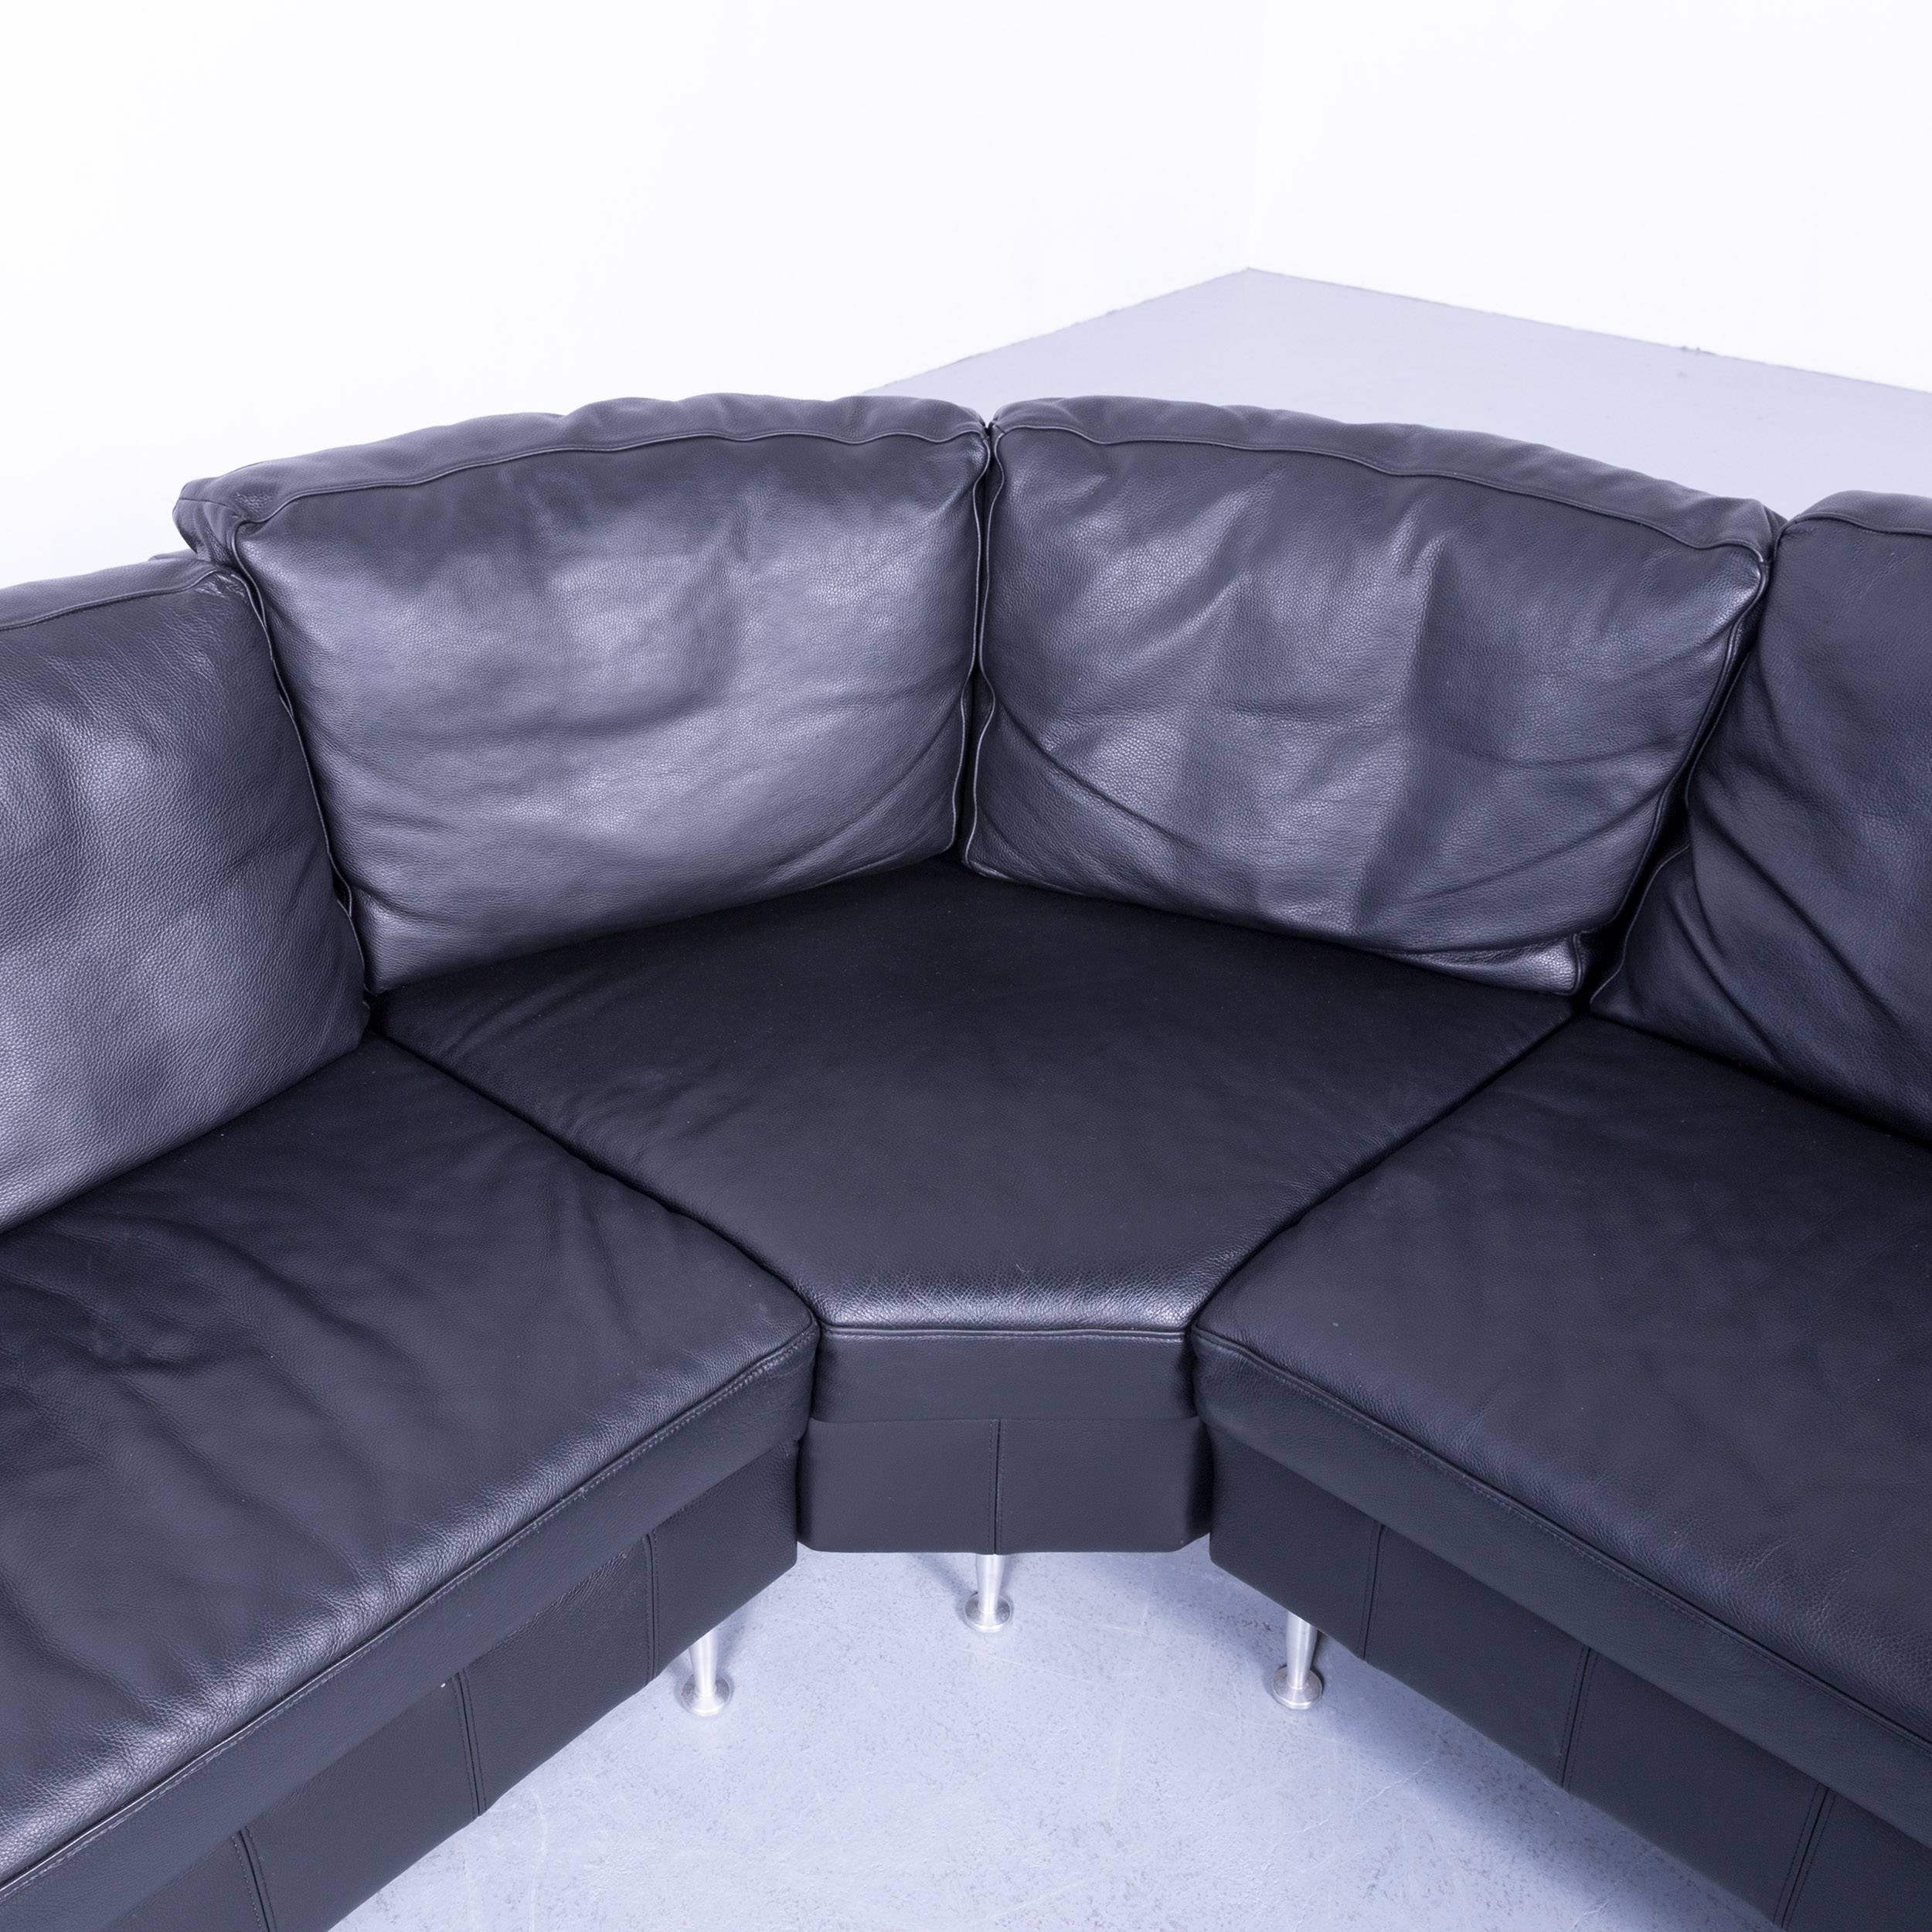 AuBergewohnlich Designer Corner Sofa Leather Black Modern Couch With Metal Feet For Sale 1